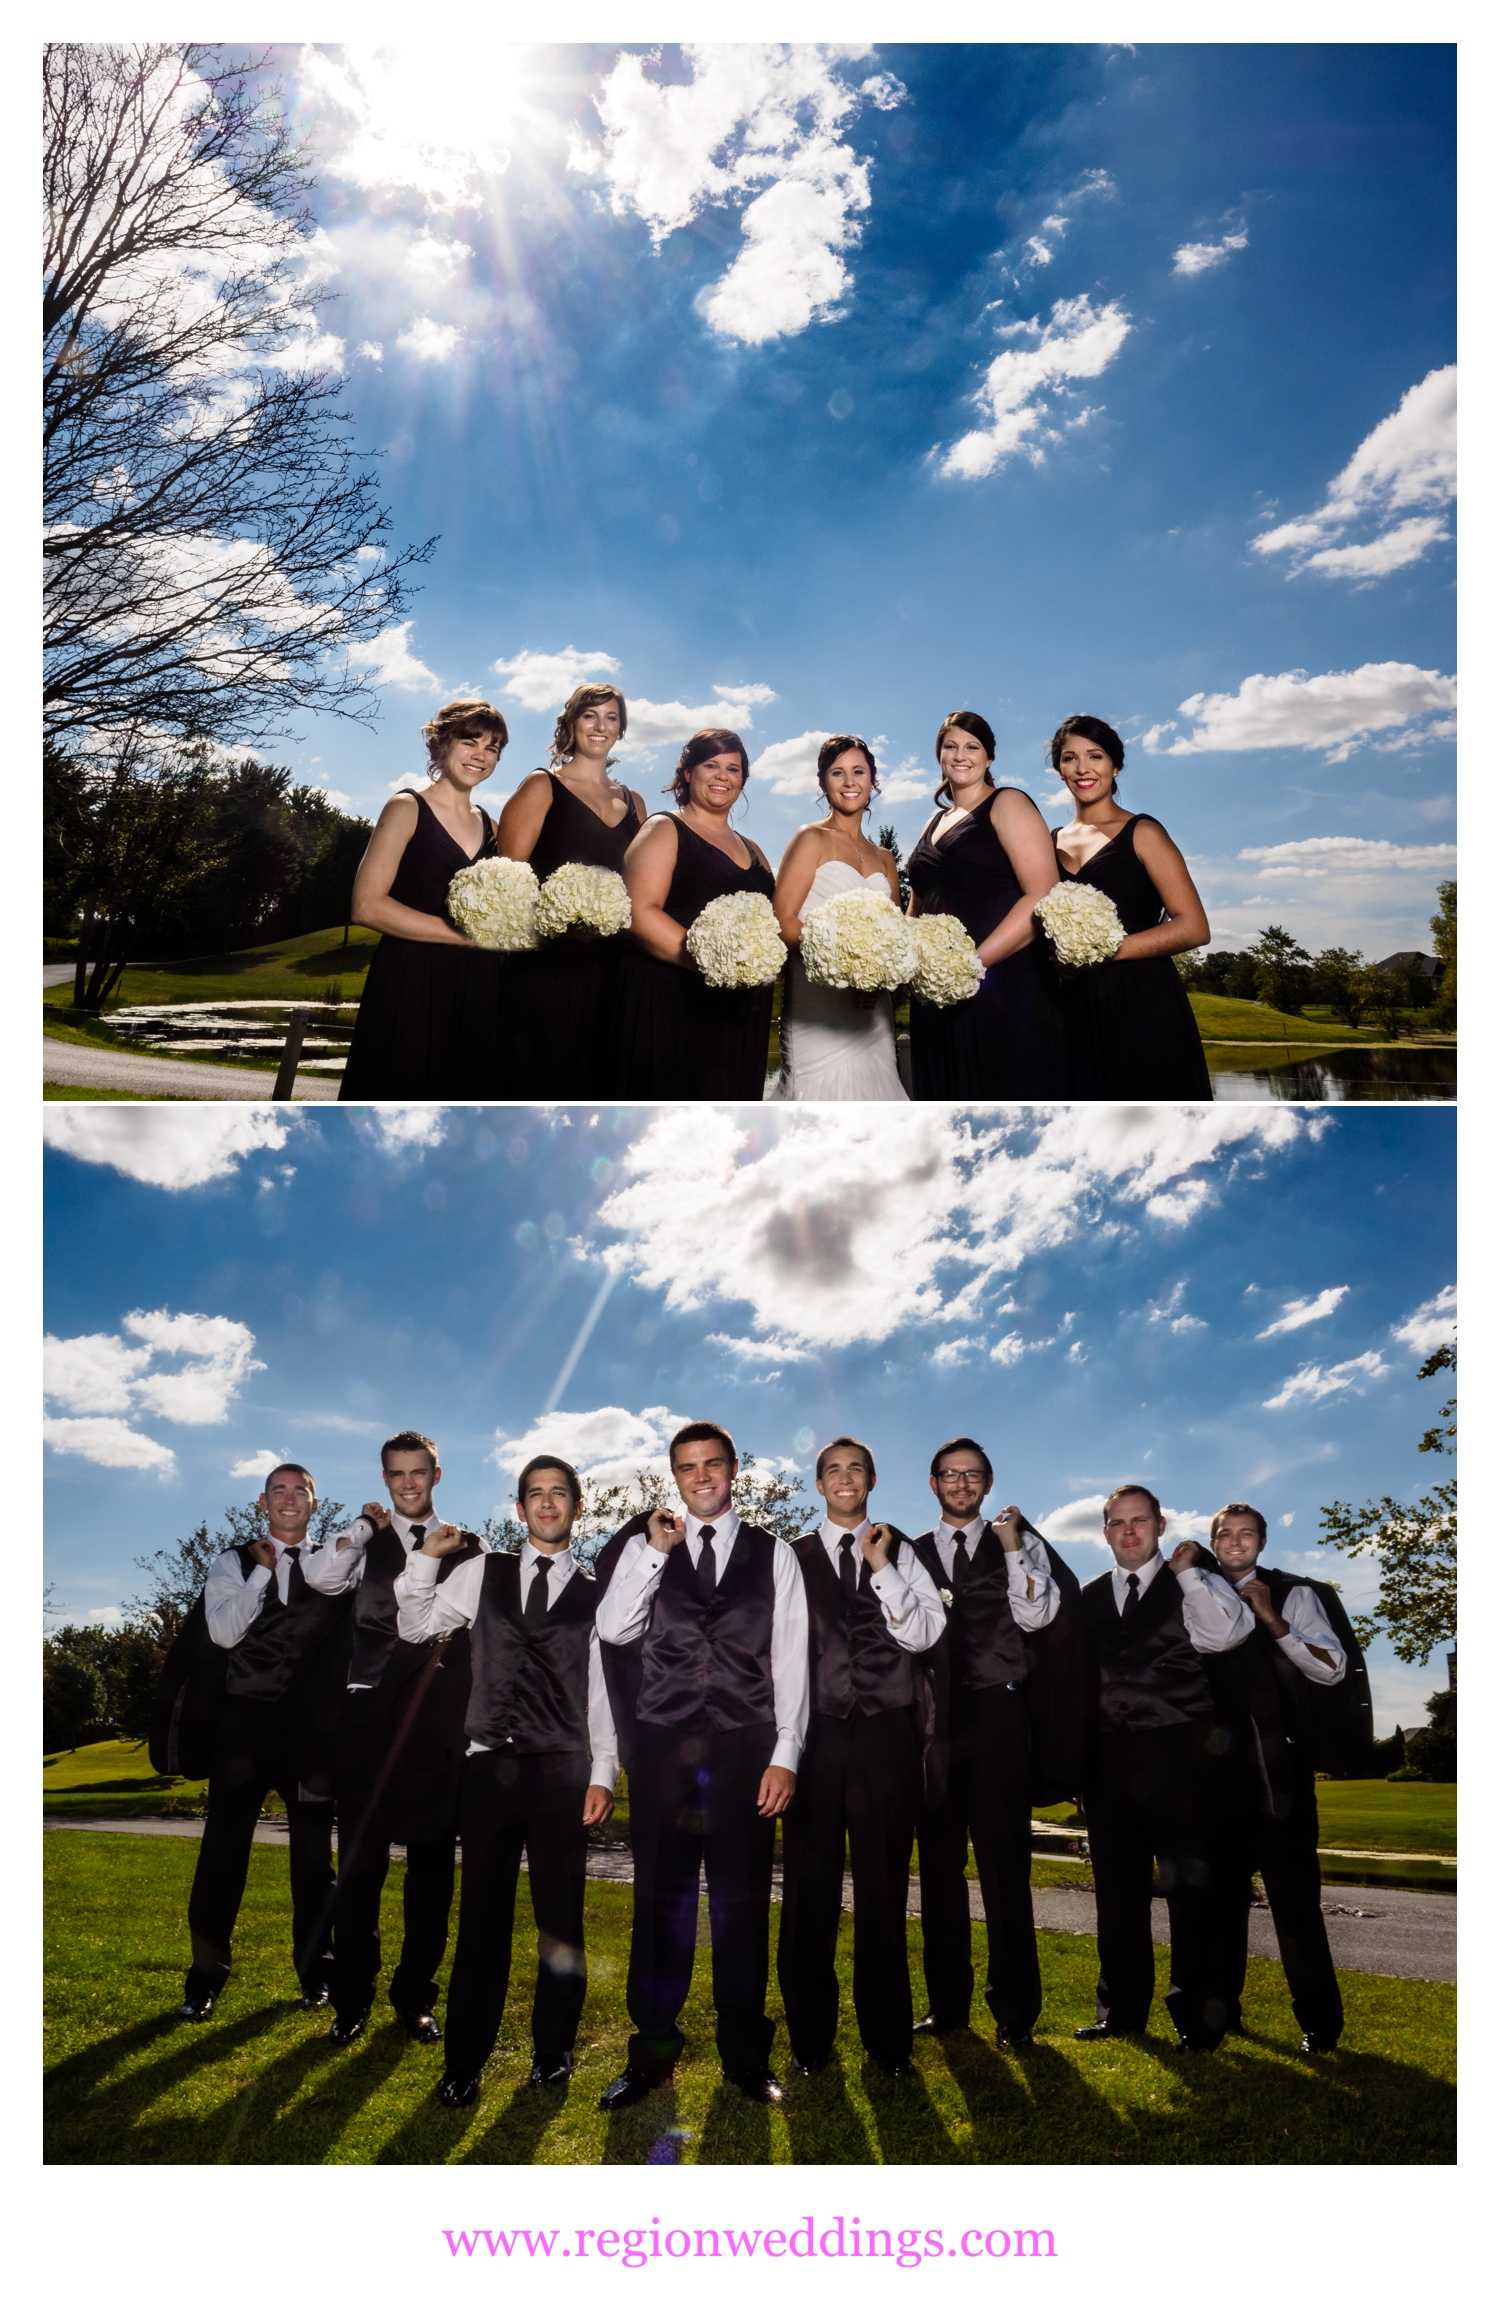 Wedding party photos at White Hawk Country Club in Crown Point, Indiana.